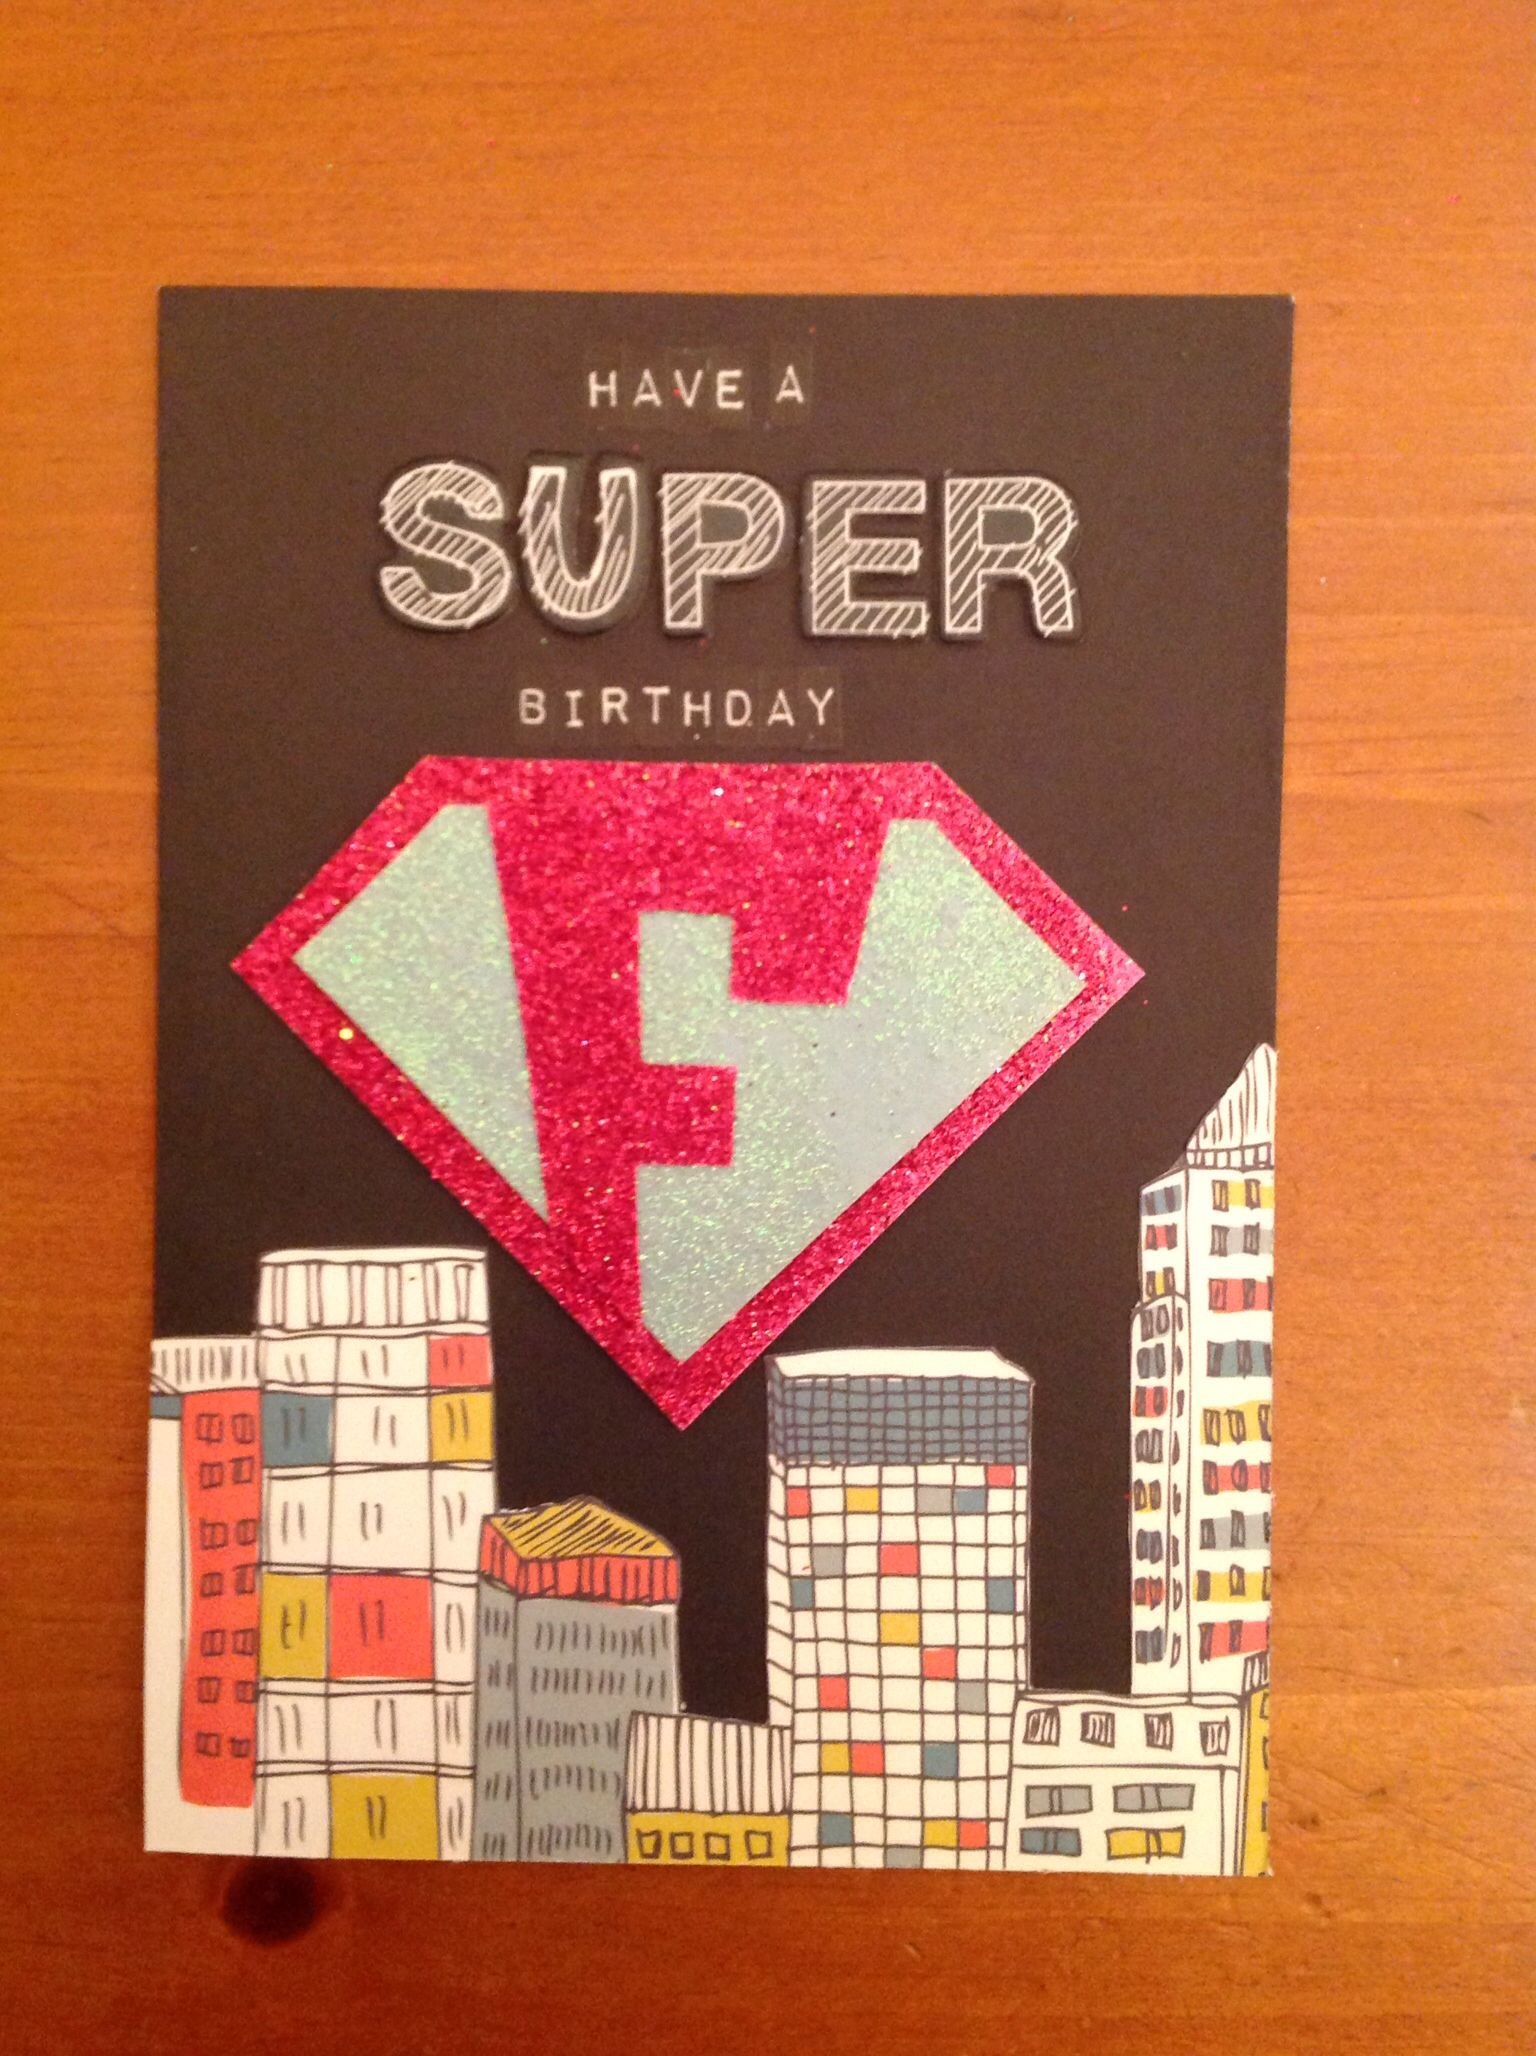 Personalised superhero birthday card by cardtimes skyline in man personalised superhero birthday card by cardtimes skyline in man made paper by first edition kristyandbryce Image collections